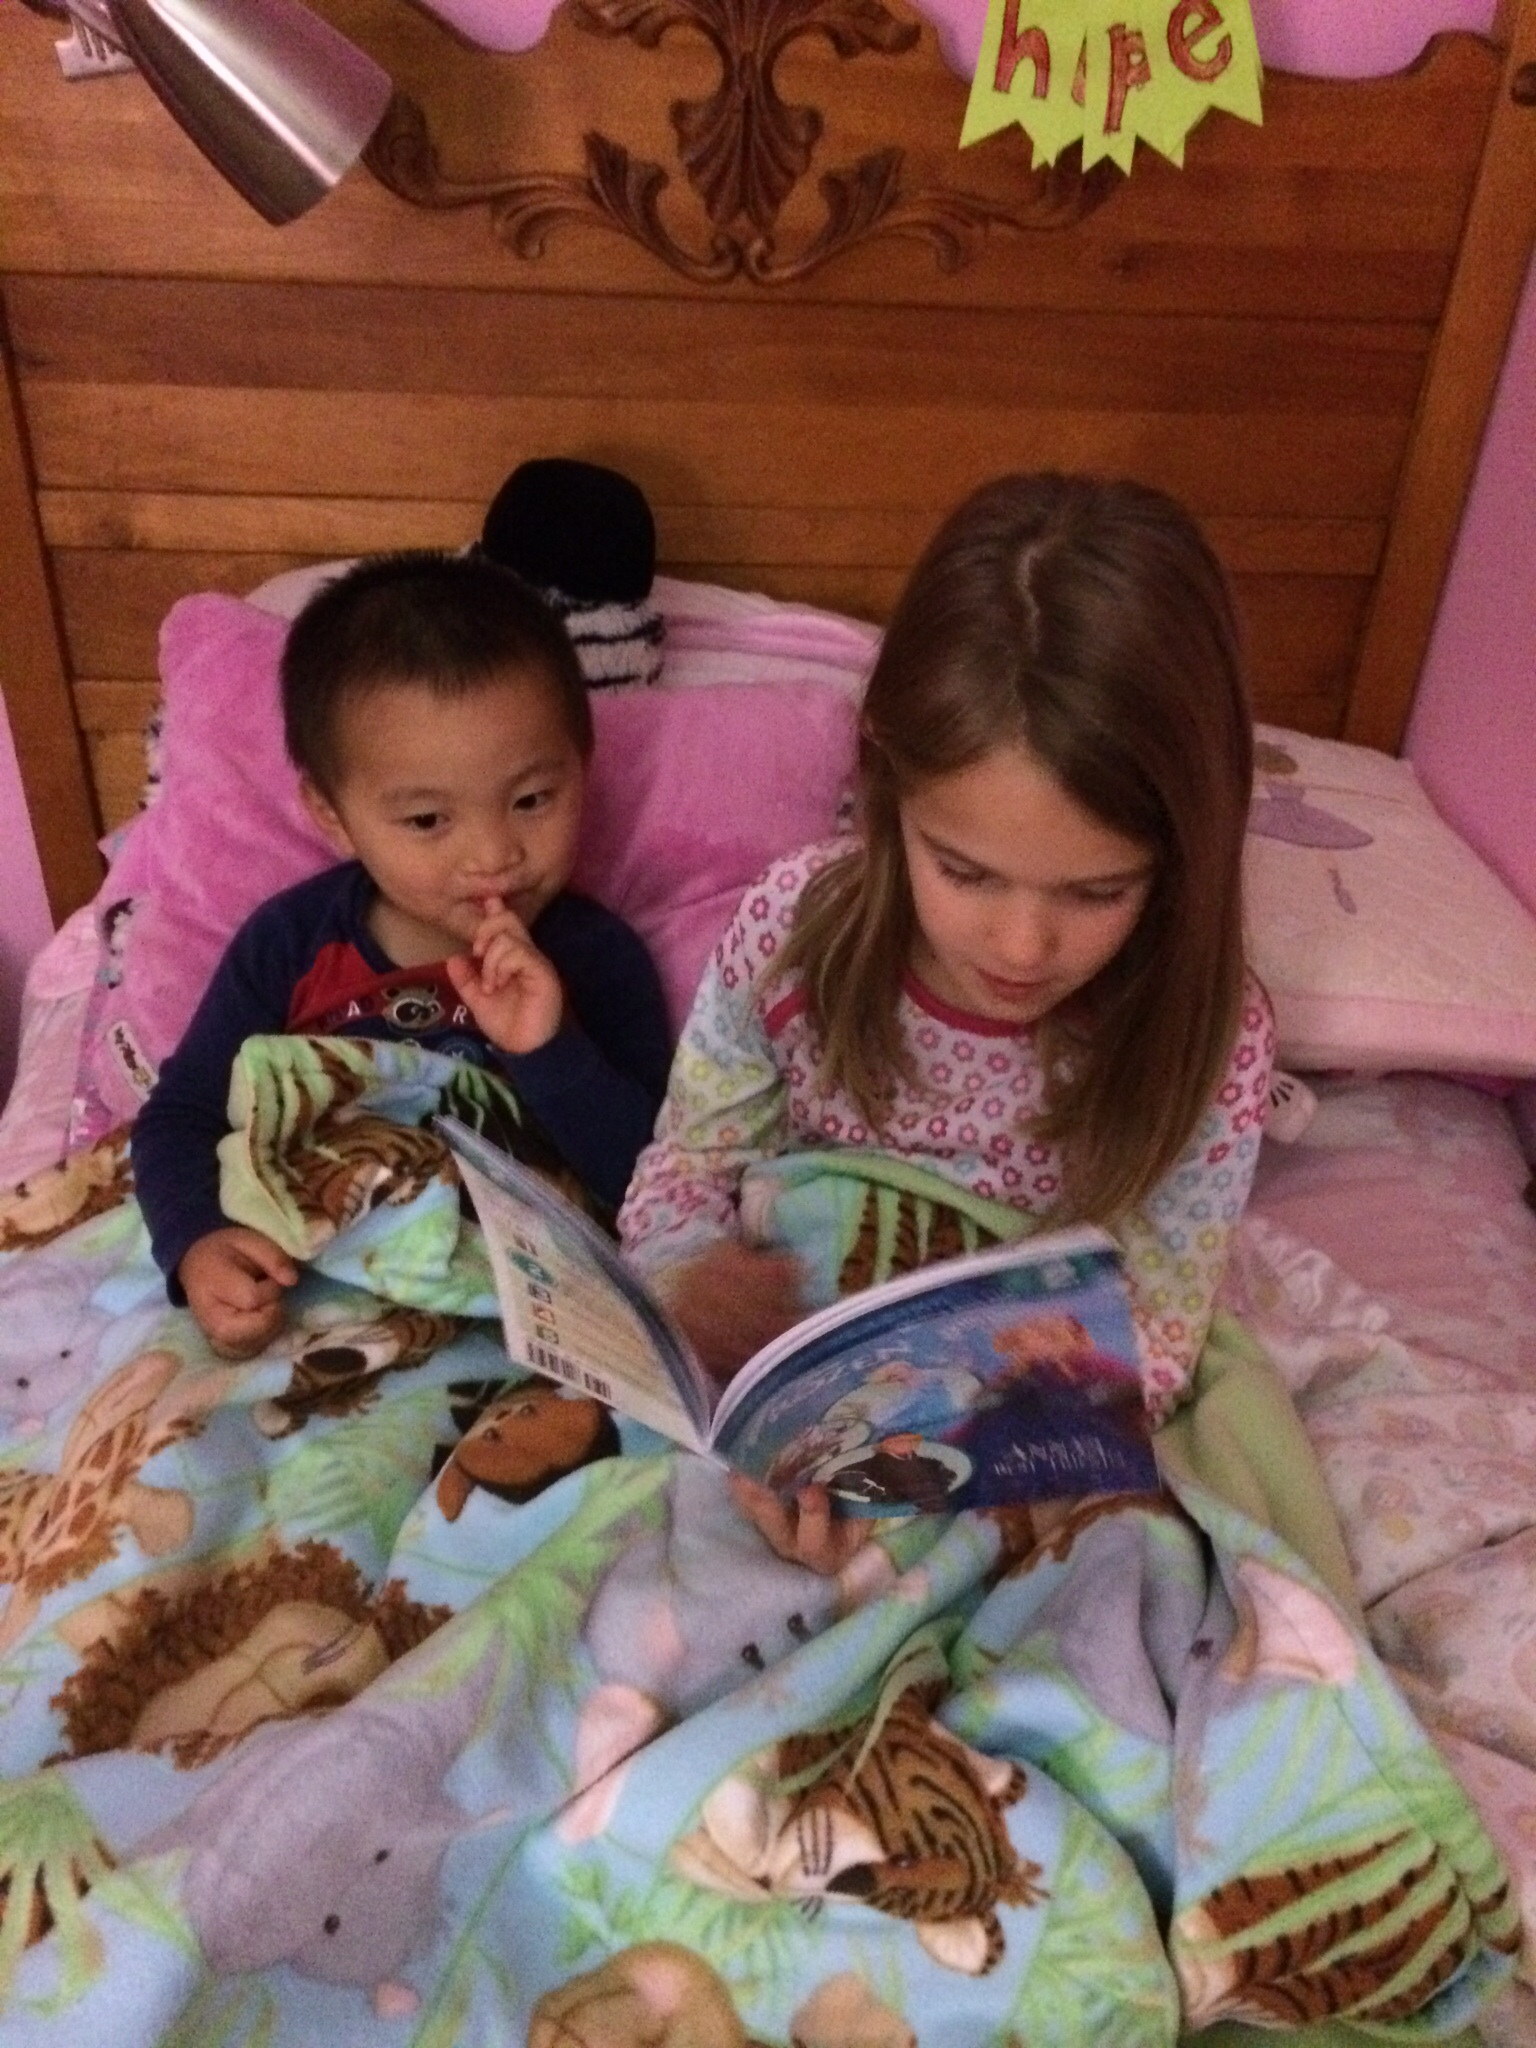 She sacrificed me reading to her because XS asked her to read him one more book before bed.